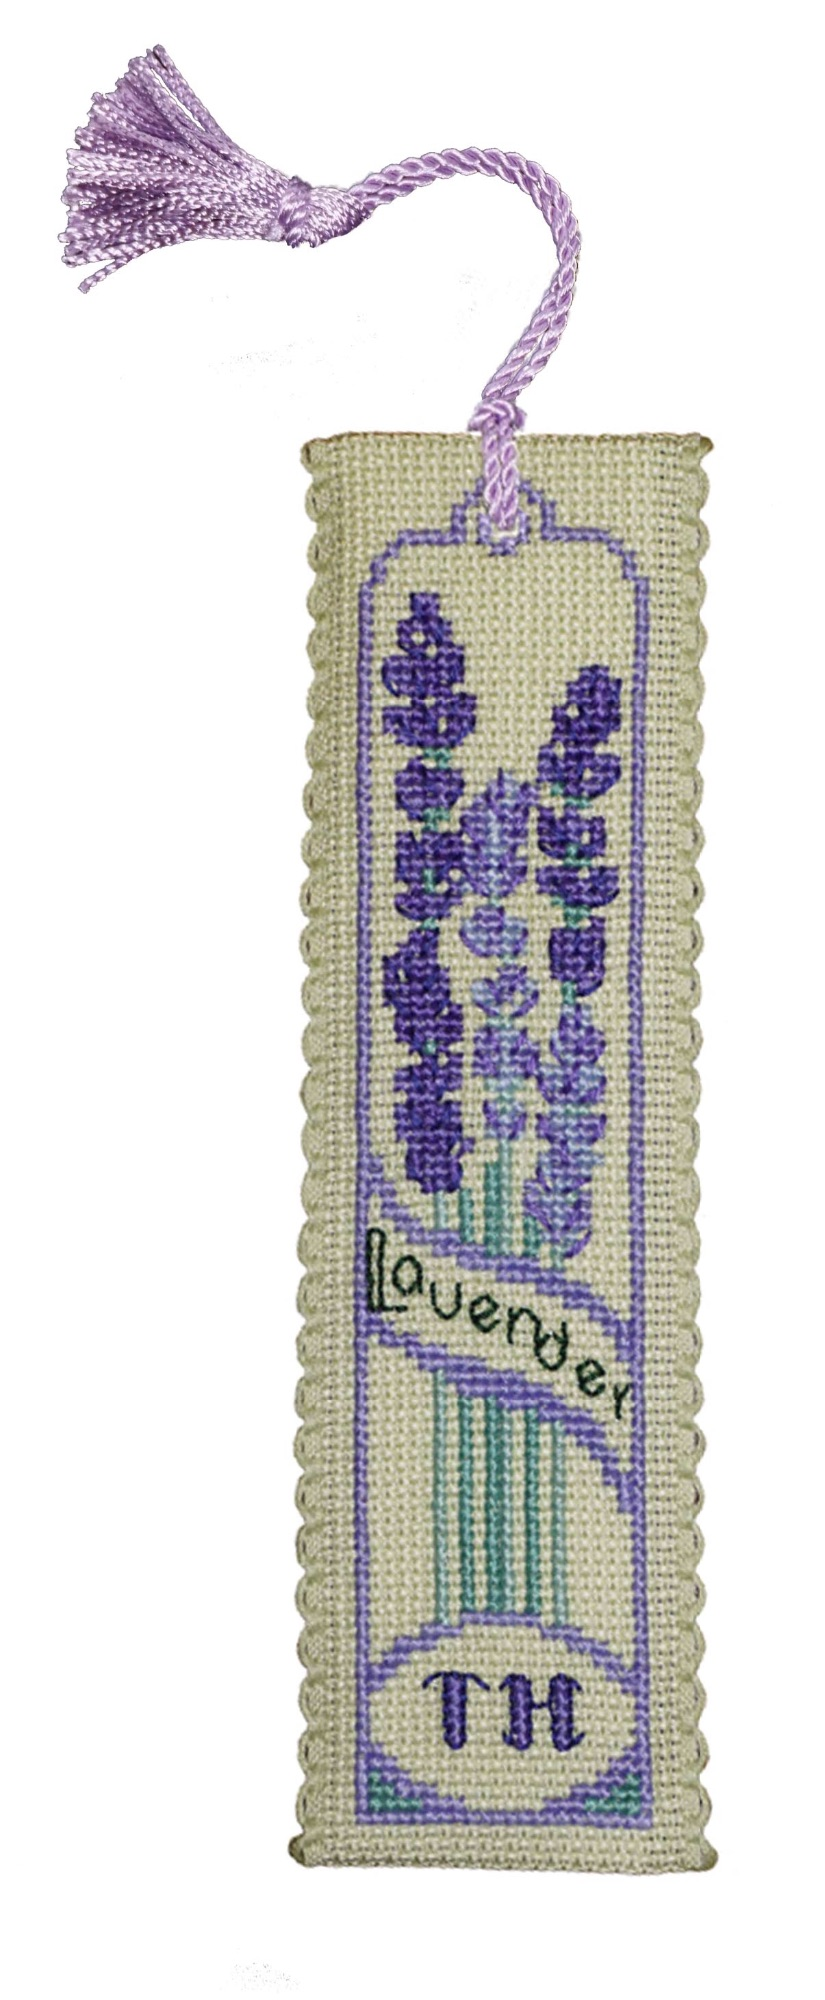 BOOKMARK Lavender. Cross-Stitch Kit by Textile Heritage